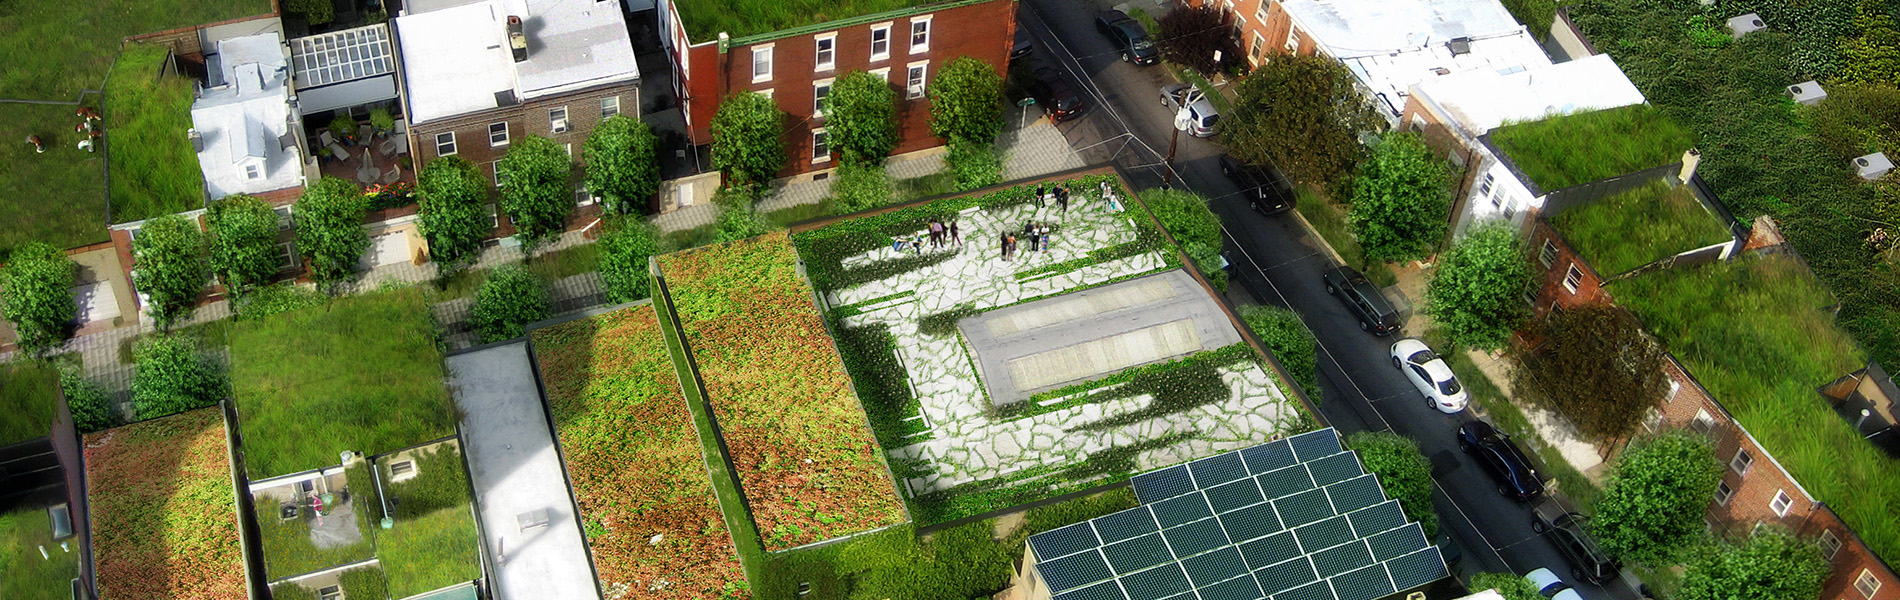 Green roofs and solar panels in a rendering of Philadelphia rowhouses